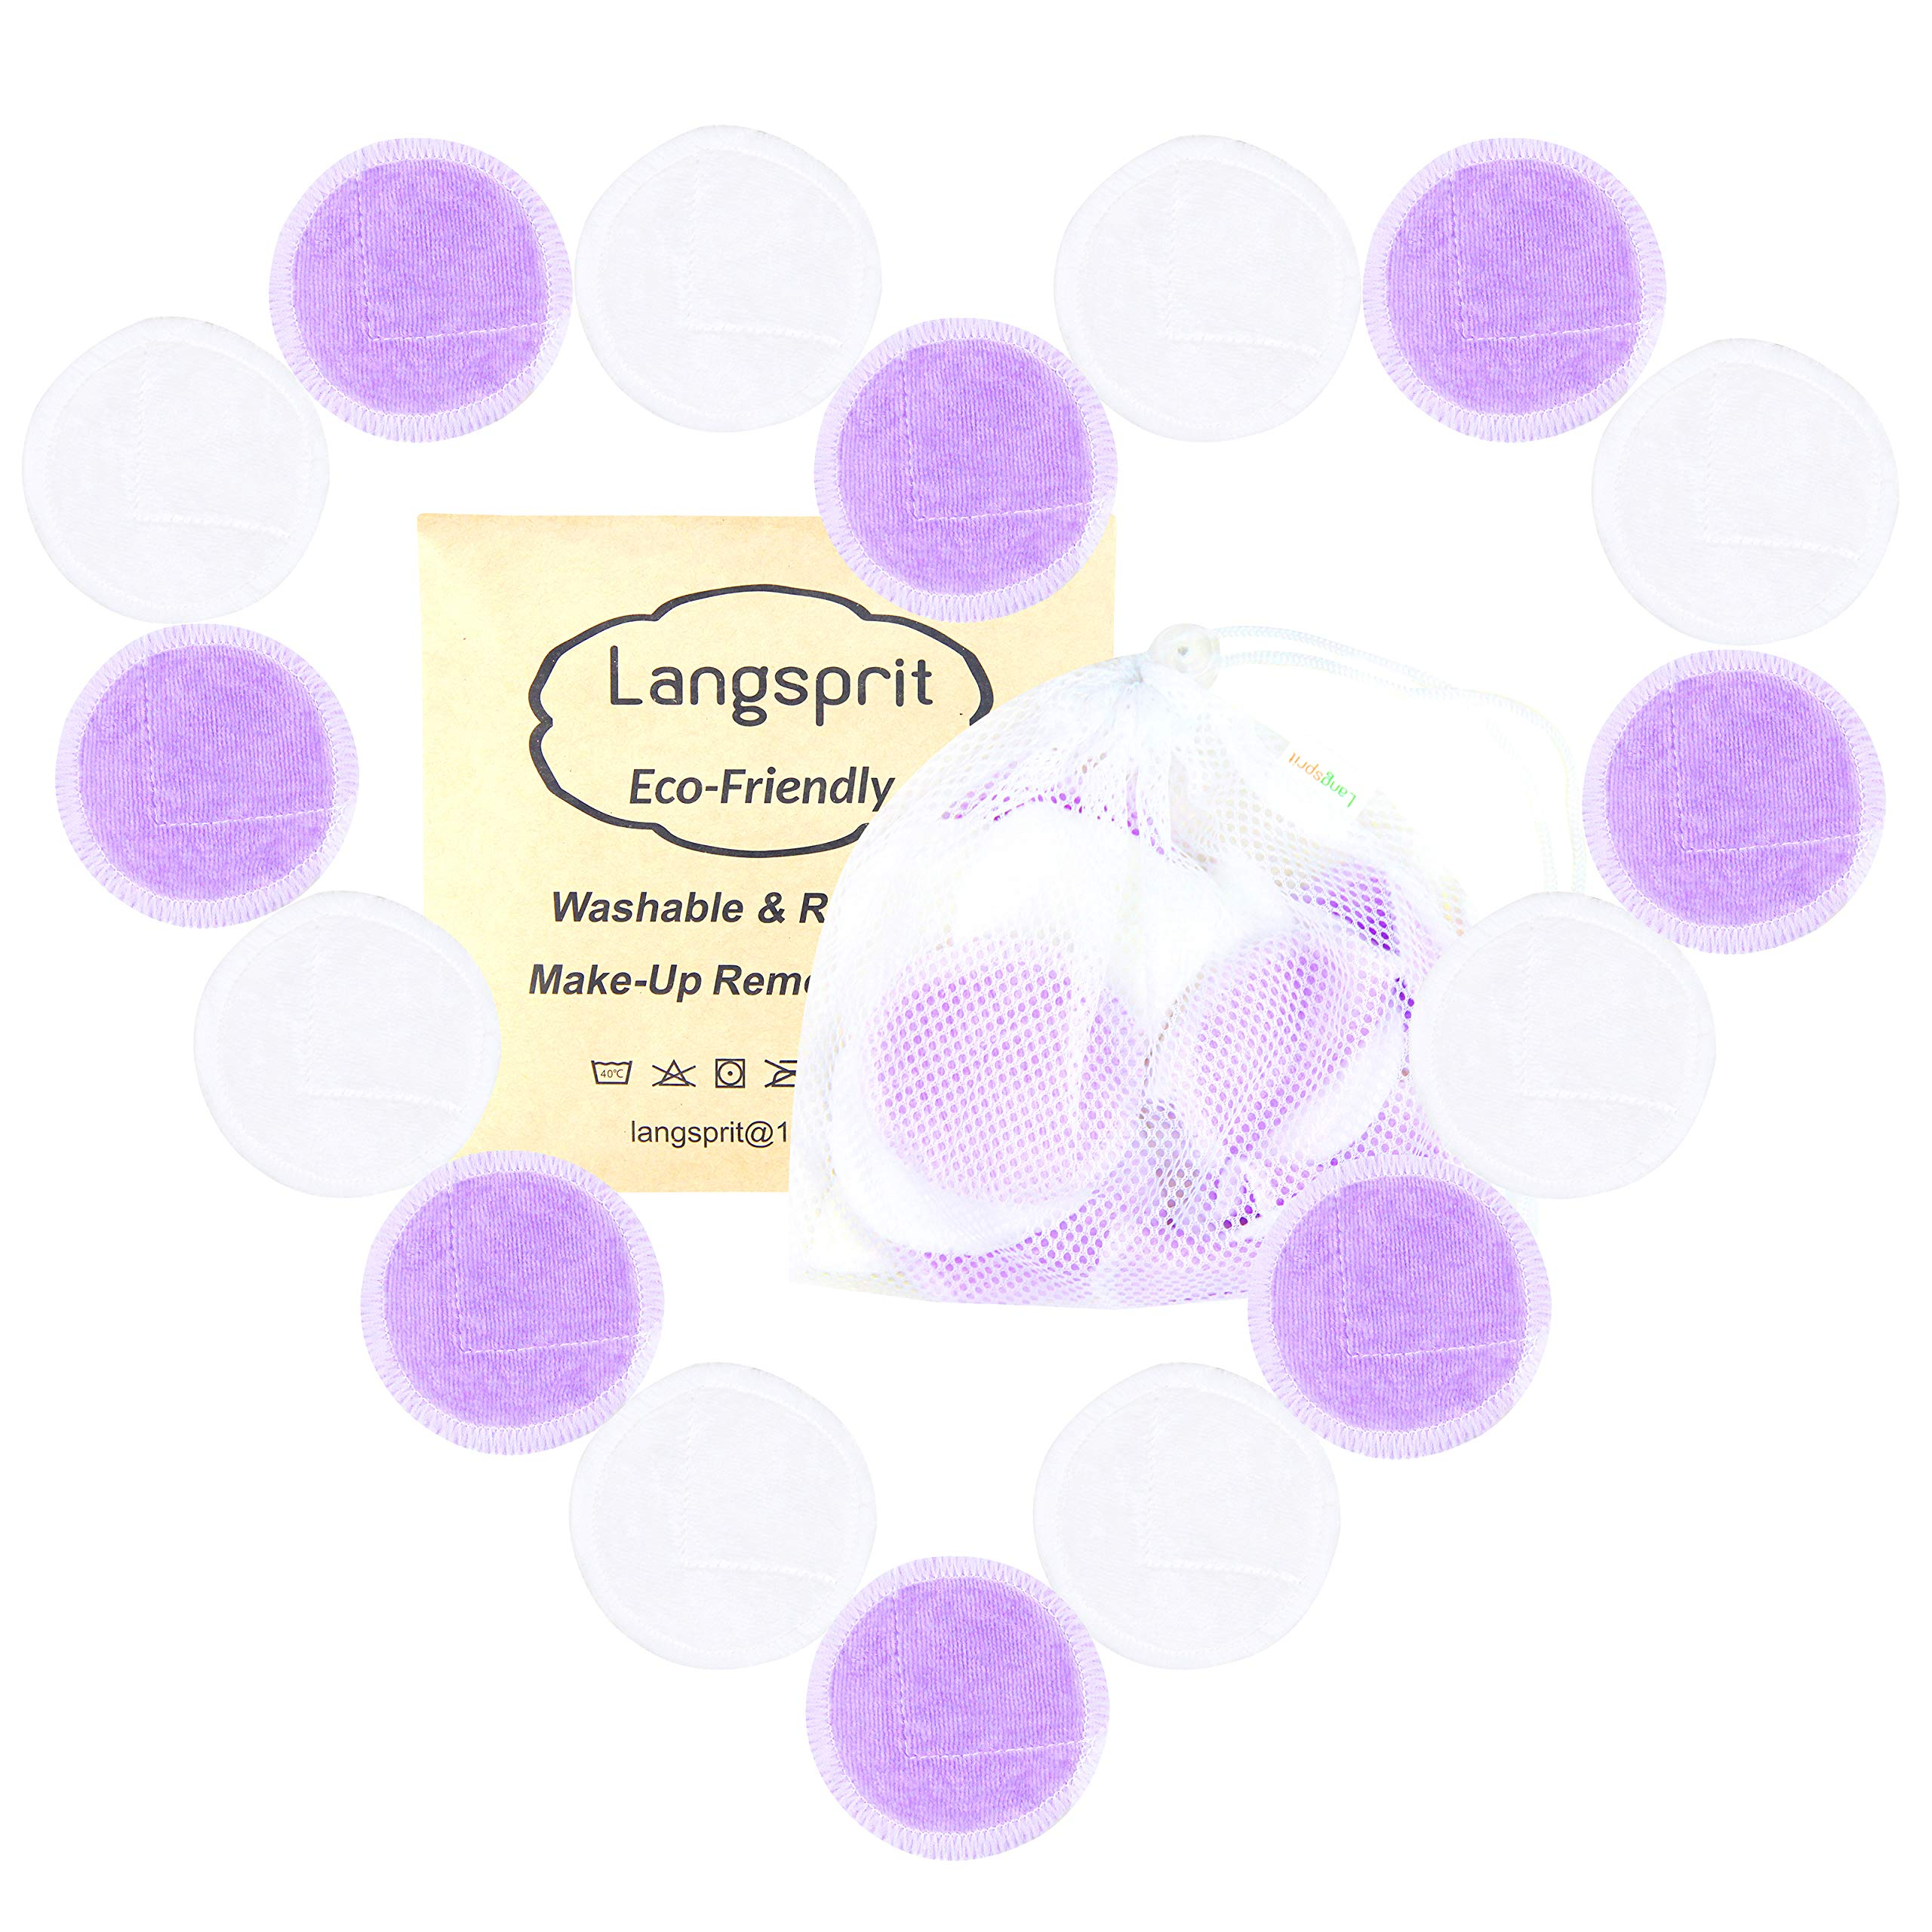 Langsprit Reusable Makeup Remover Pads 16 Packs,Organic Bamboo Velour Face Pads,Facial Rounds,Velour Face pads Cleansing Wipe Cloth with free Laundry Bag(Bamboo Velour)